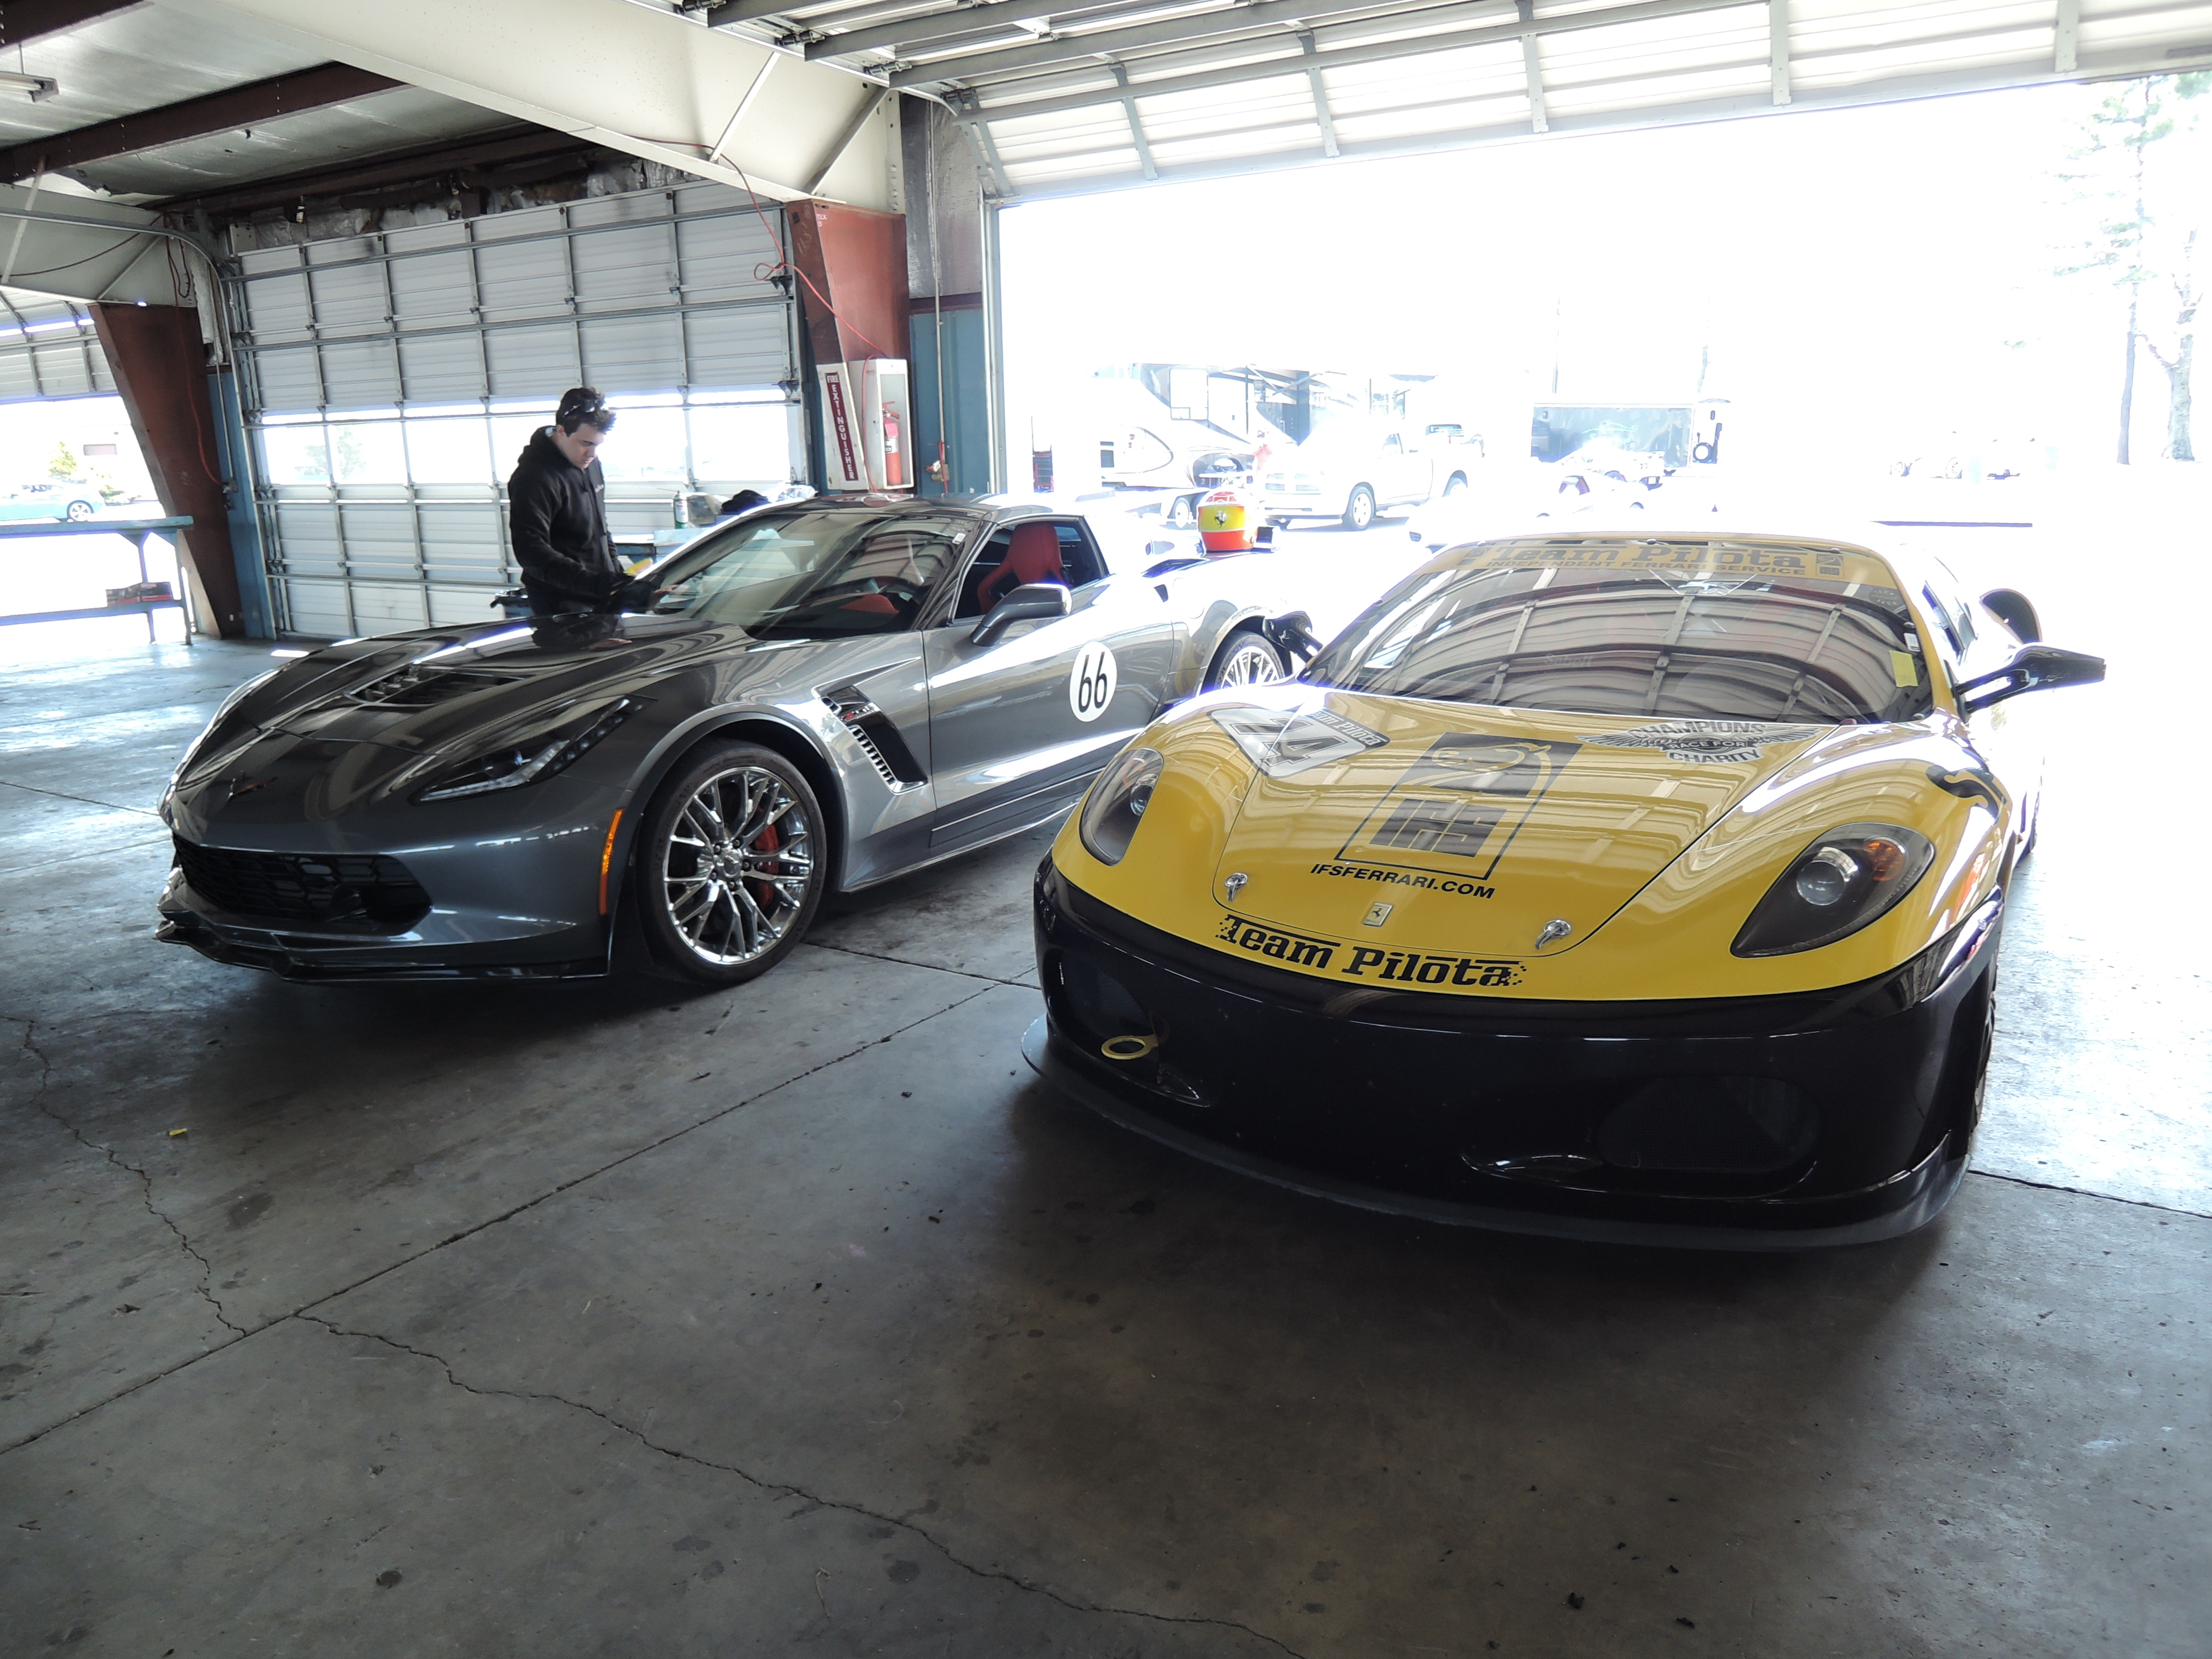 silver Corvette and yellow Ferrari 430 - watkins glen